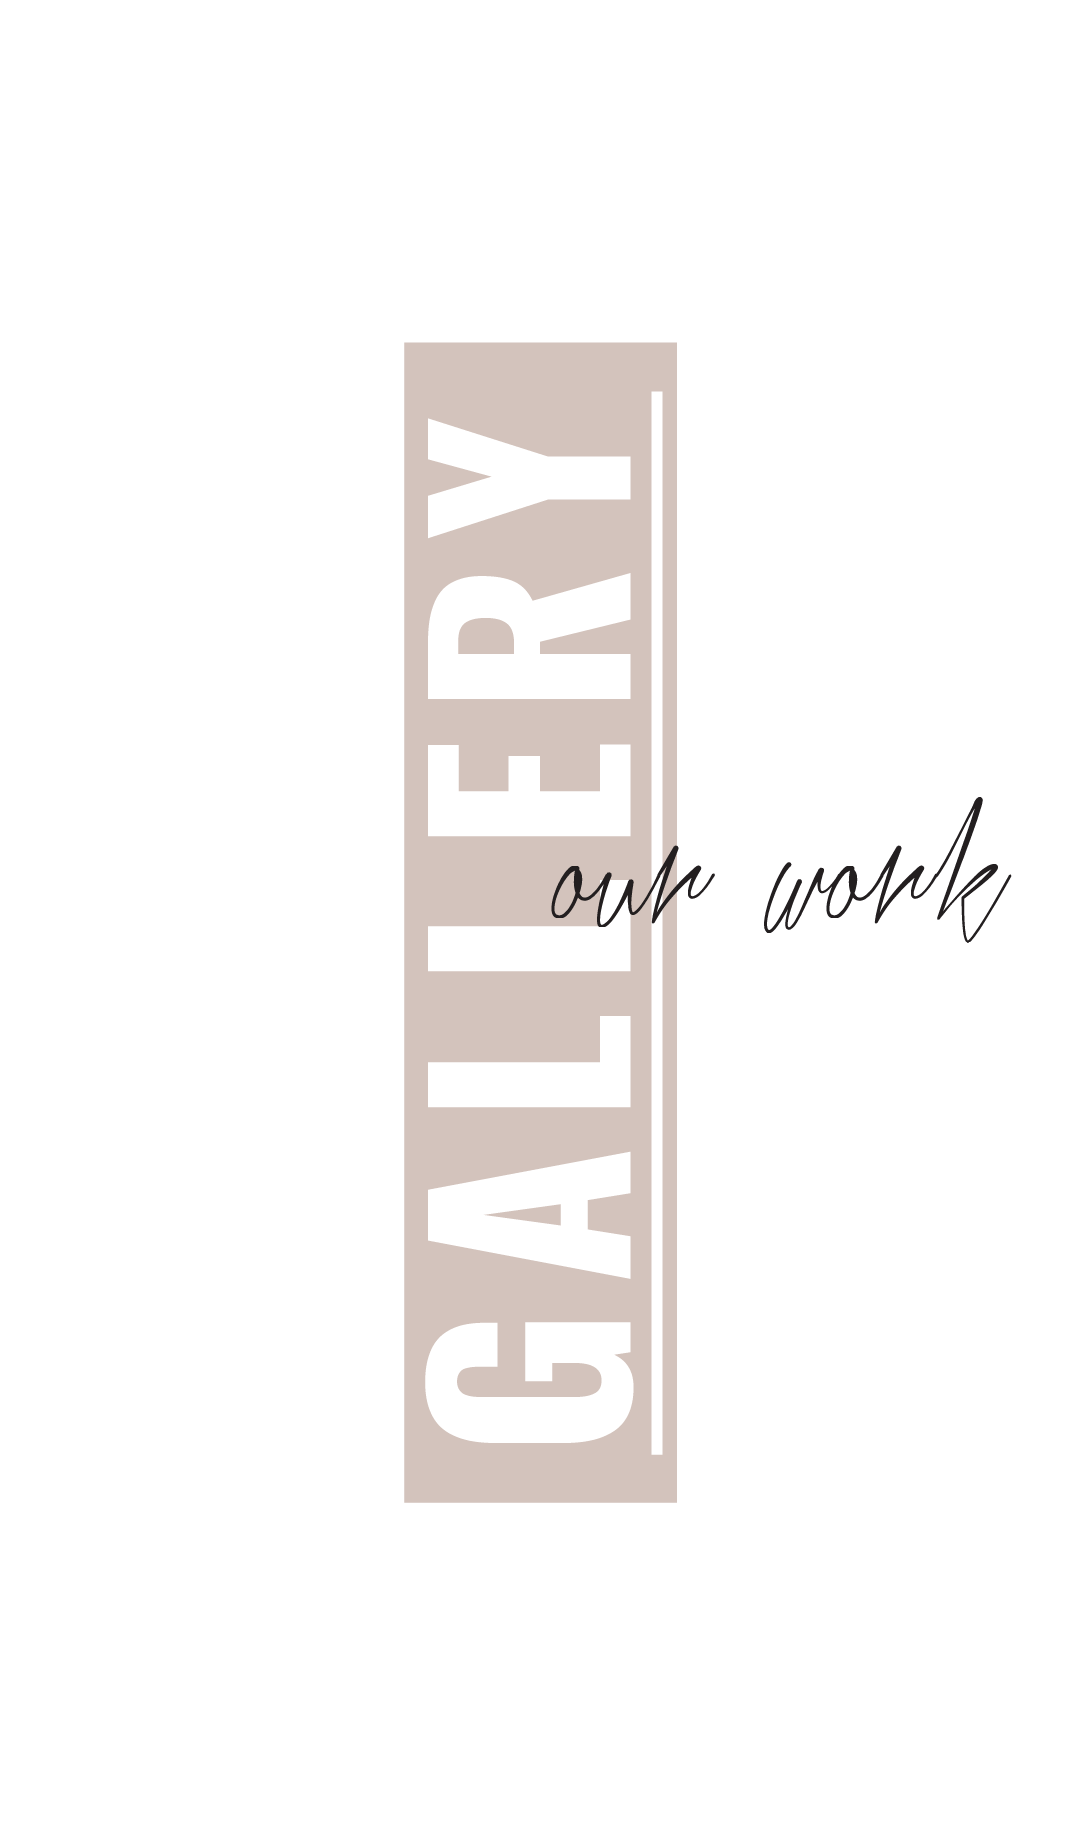 gallery-text.png